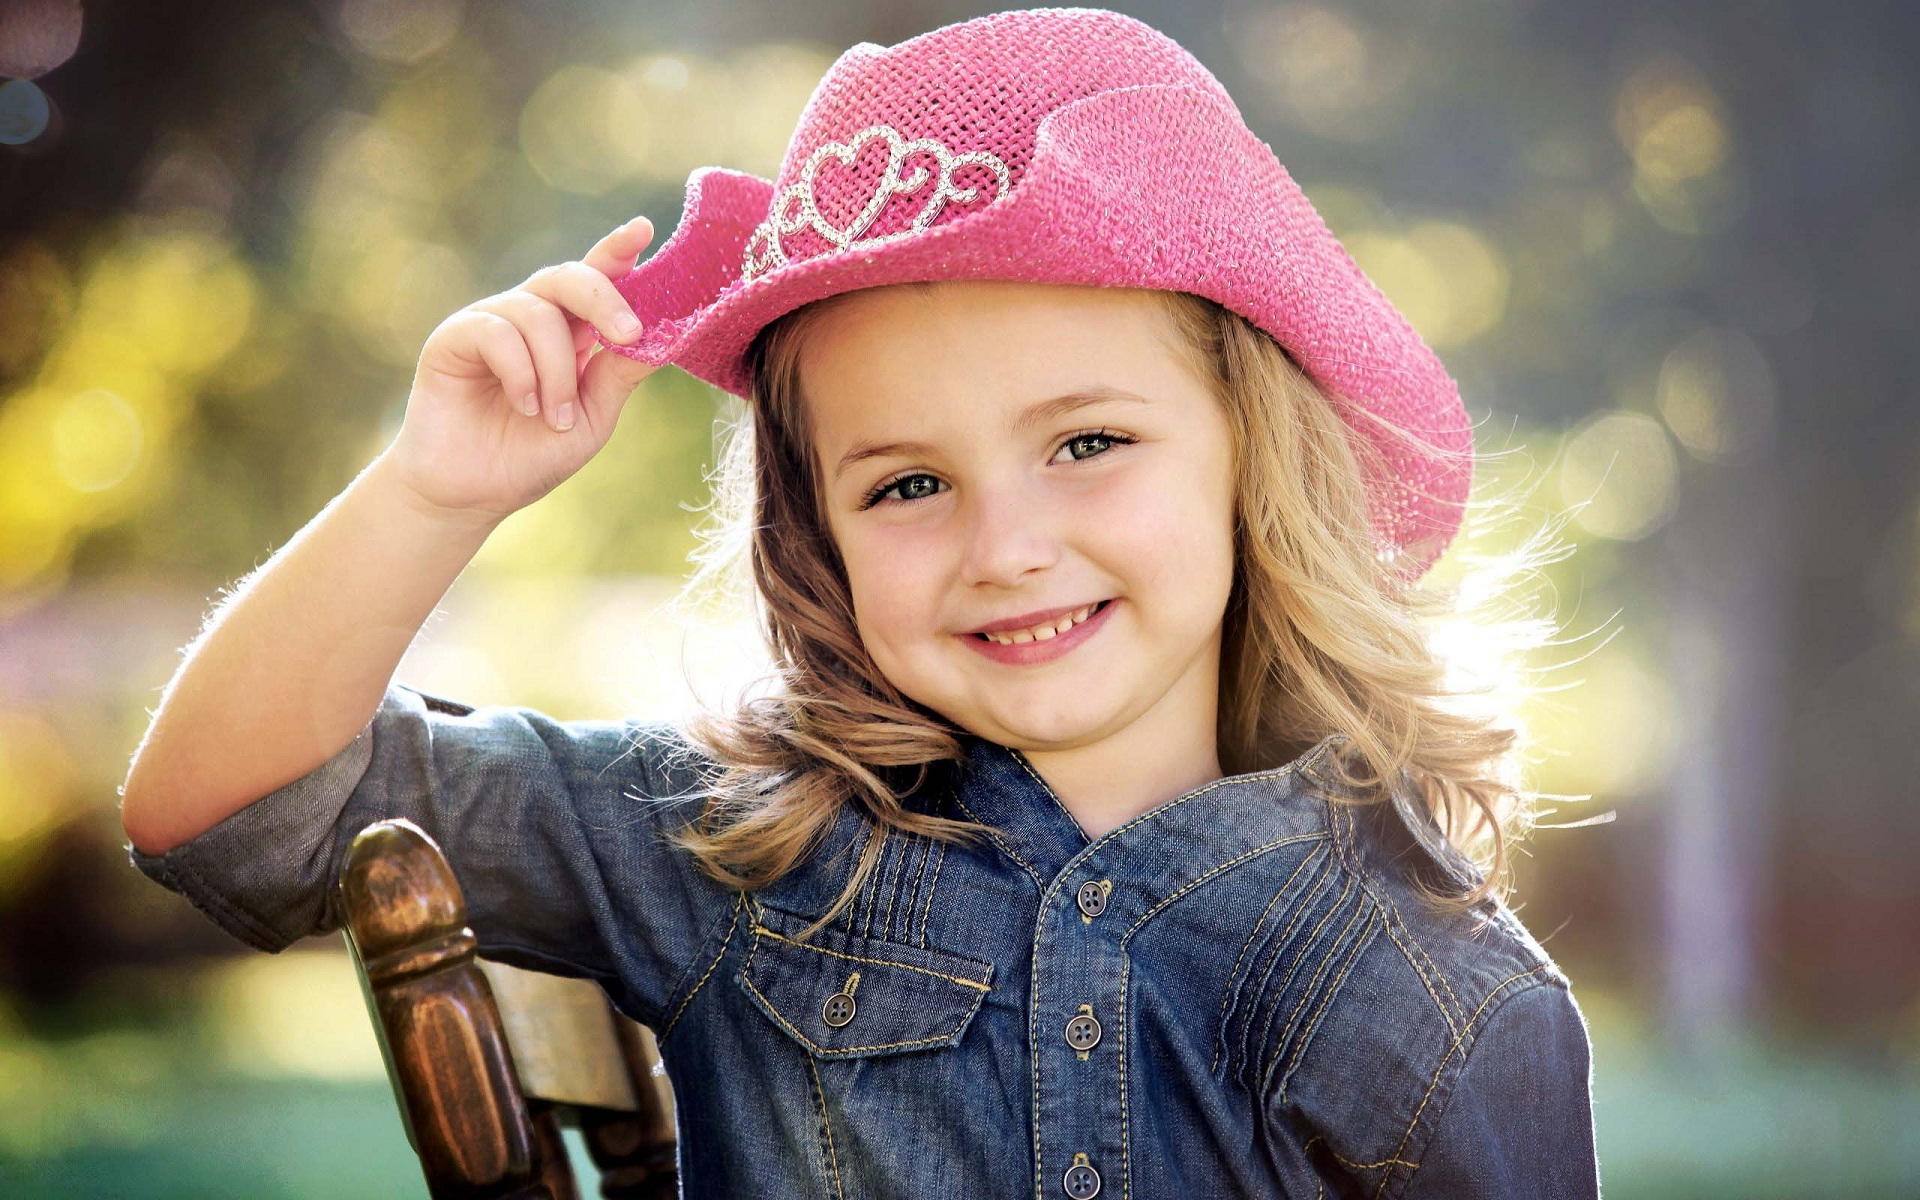 Free Download Stylish Cute Baby Girl Beautiful Smiling Face Hd Wallpapers Rocks 1920x1200 For Your Desktop Mobile Tablet Explore 46 Beautiful Smile Wallpaper Happy Face Wallpaper Smile Smile More